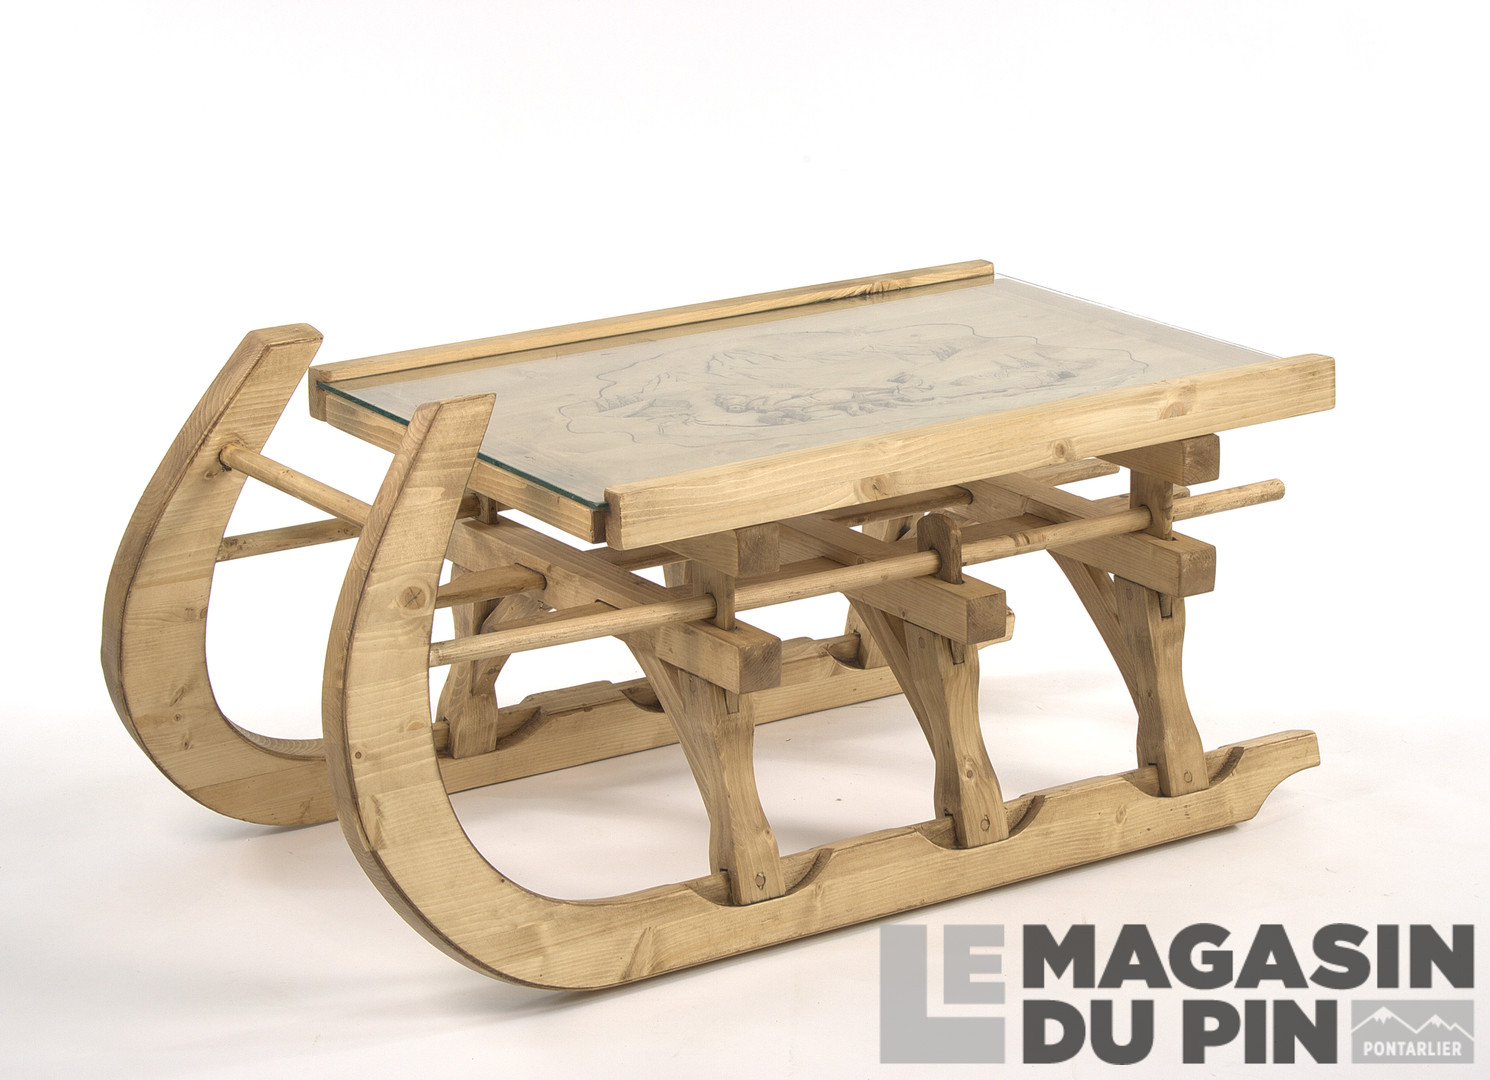 Luge En Bois Table Basse : Pin massif > Tables basses > Table basse luge PM Traineau